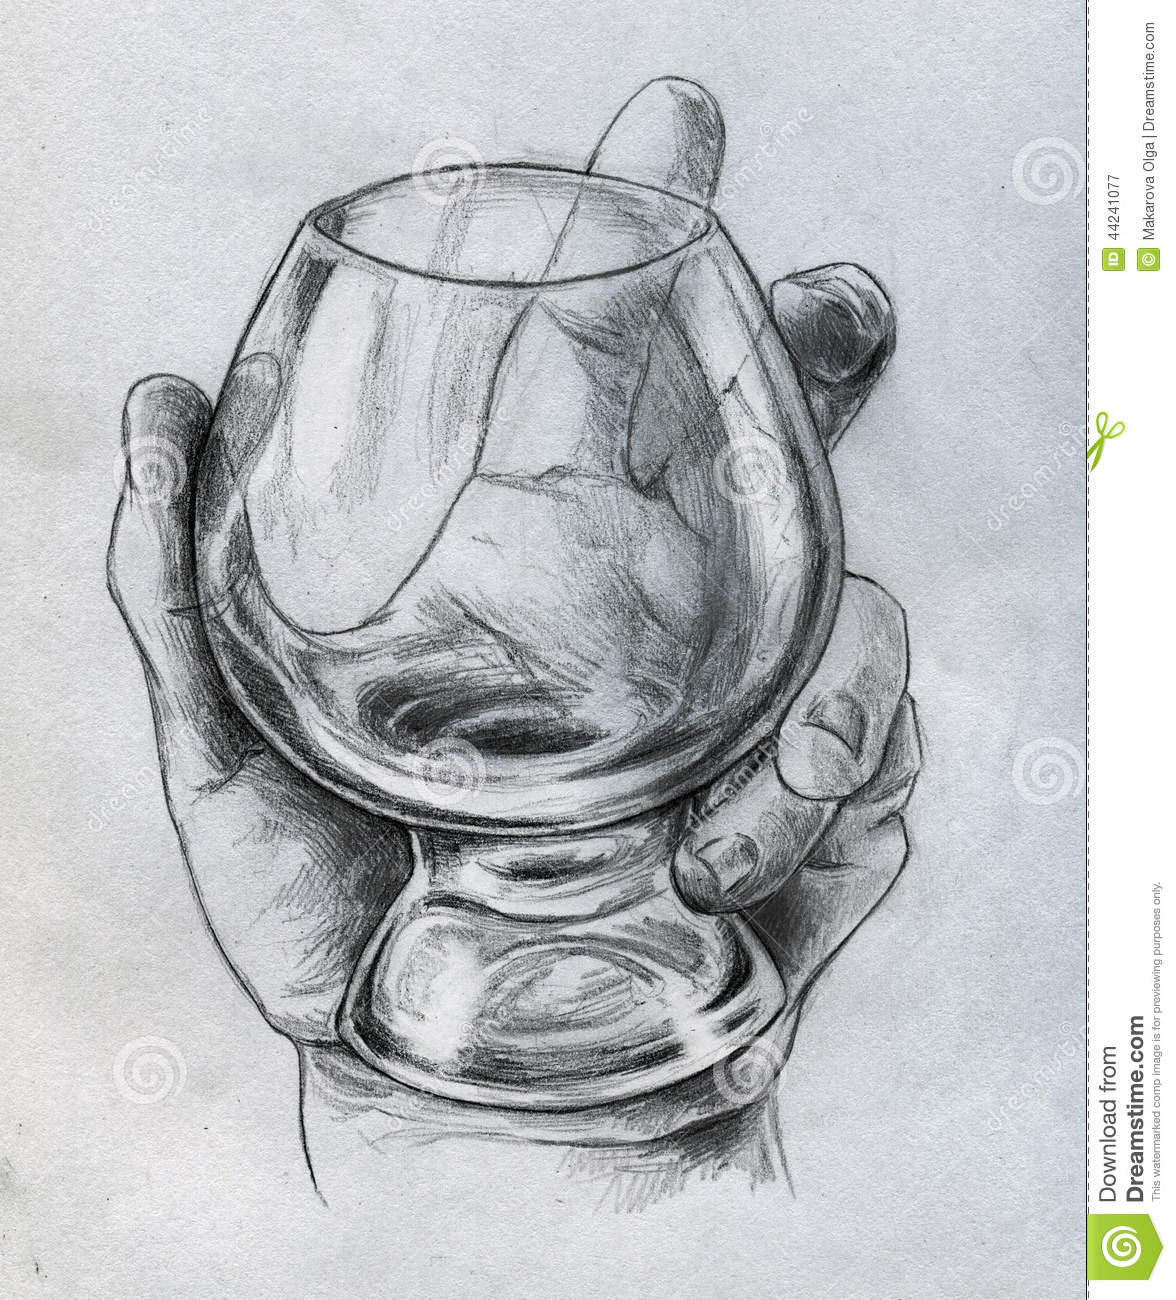 Hand holding glass sketch stock illustration illustration of